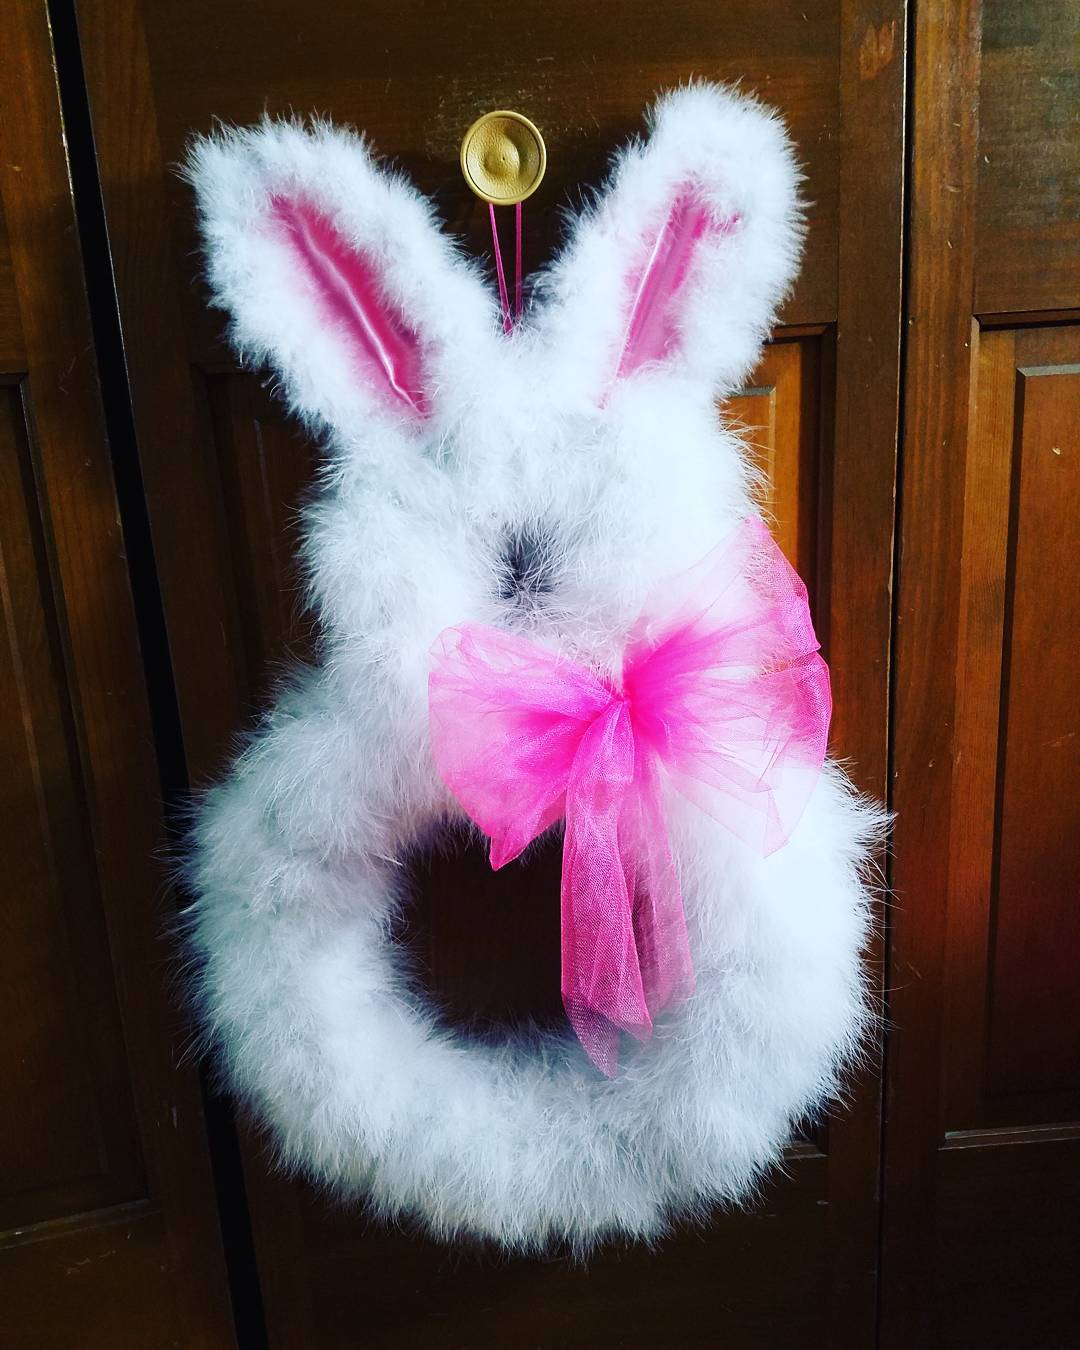 Lovely Soft Bunny Wreath Made At Home For Easter